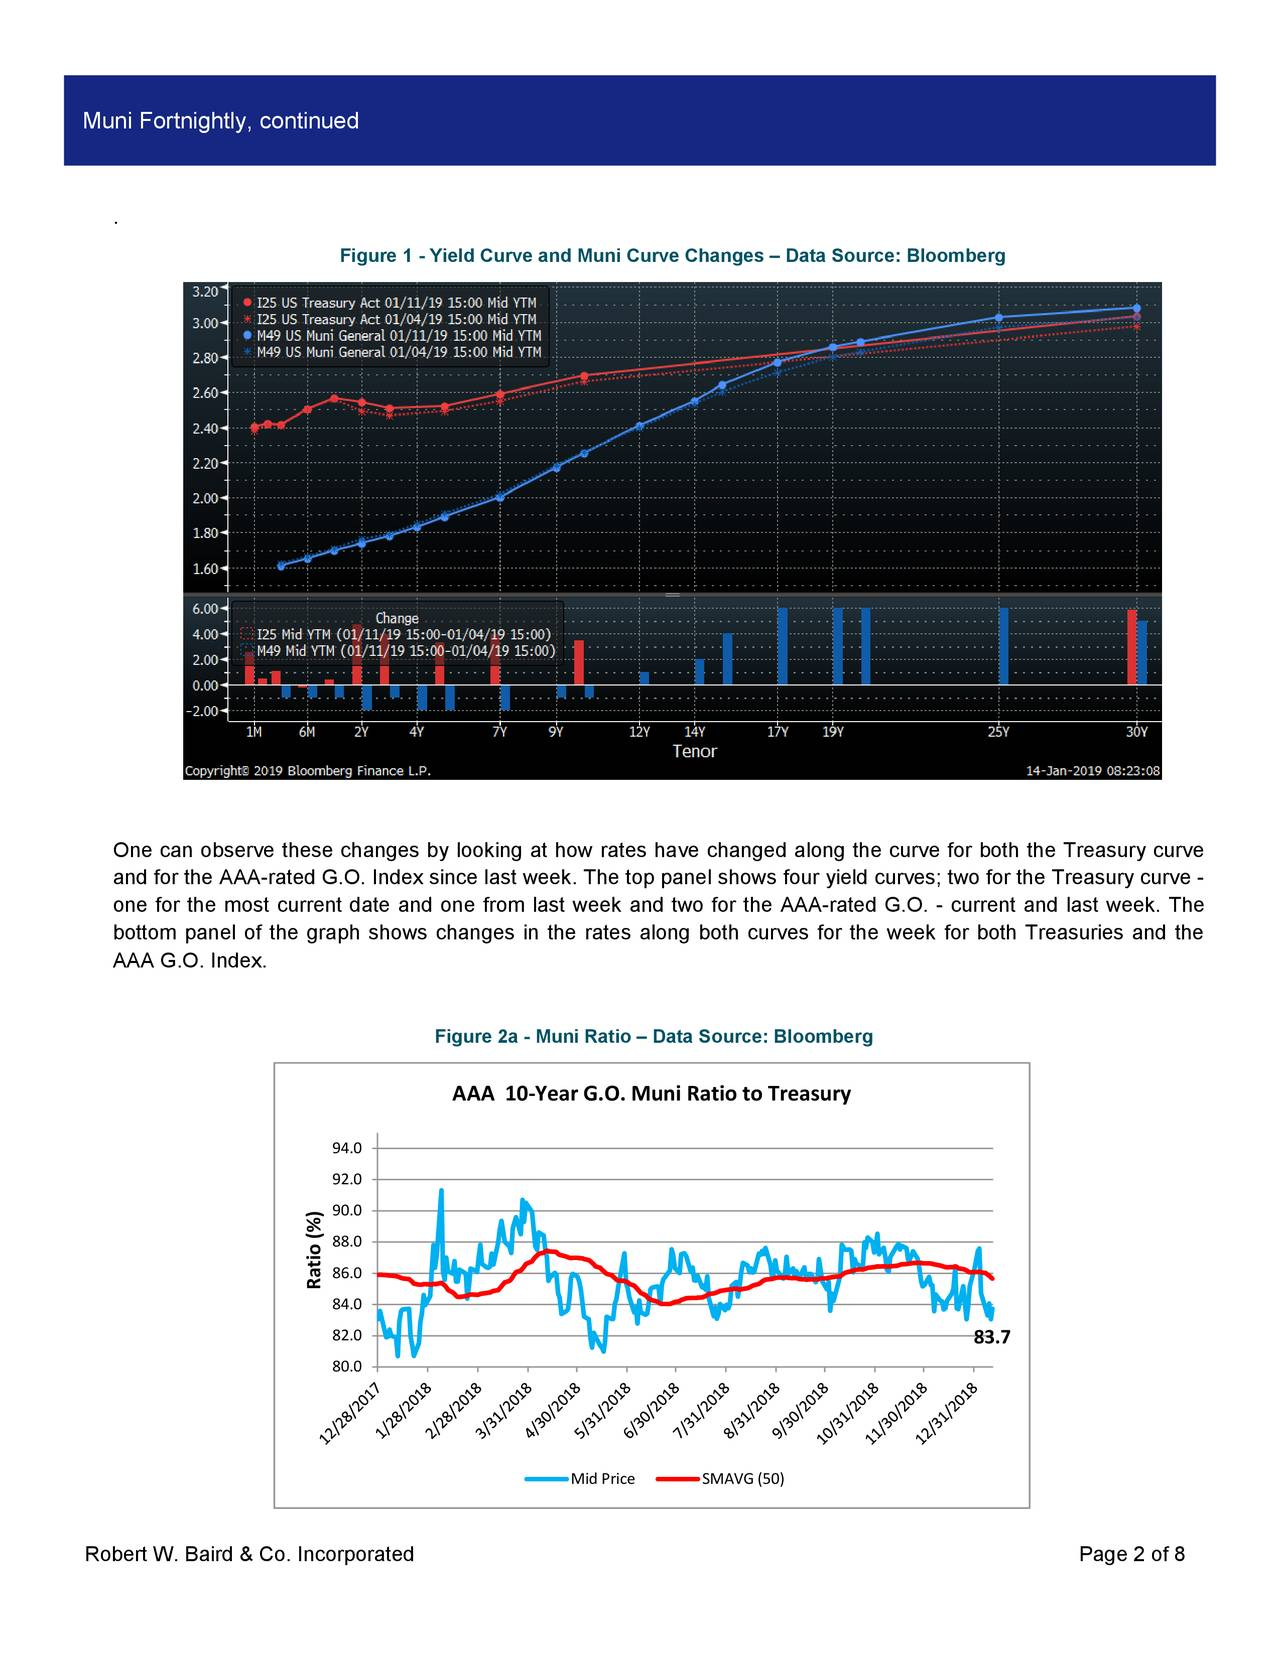 . Figure 1 - Yield Curve and Muni Curve Changes – Data Source: Bloomberg One can observe these changes by looking at how rates have changed along the curve for both the Treasury curve and for the AAA-rated G.O. Index since last week. The top panel shows four yield curves; two for the Treasury curve - one for the most current date and one from last week and two for the AAA -rated G.O. - current and last week. The bottom panel of the graph shows changes in the rates along both curves for the week for both Treasuries and the AAA G.O. Index. Figure 2a - Muni Ratio – Data Source: Bloomberg AAA 10-Year G.O. Muni Ratio to Treasury 94.0 92.0 90.0 88.0 86.0 Ratio (%) 84.0 82.0 83.7 80.0 Mid Price SMAVG (50) Robert W. Baird & Co. Incorporated Page 2 of 8